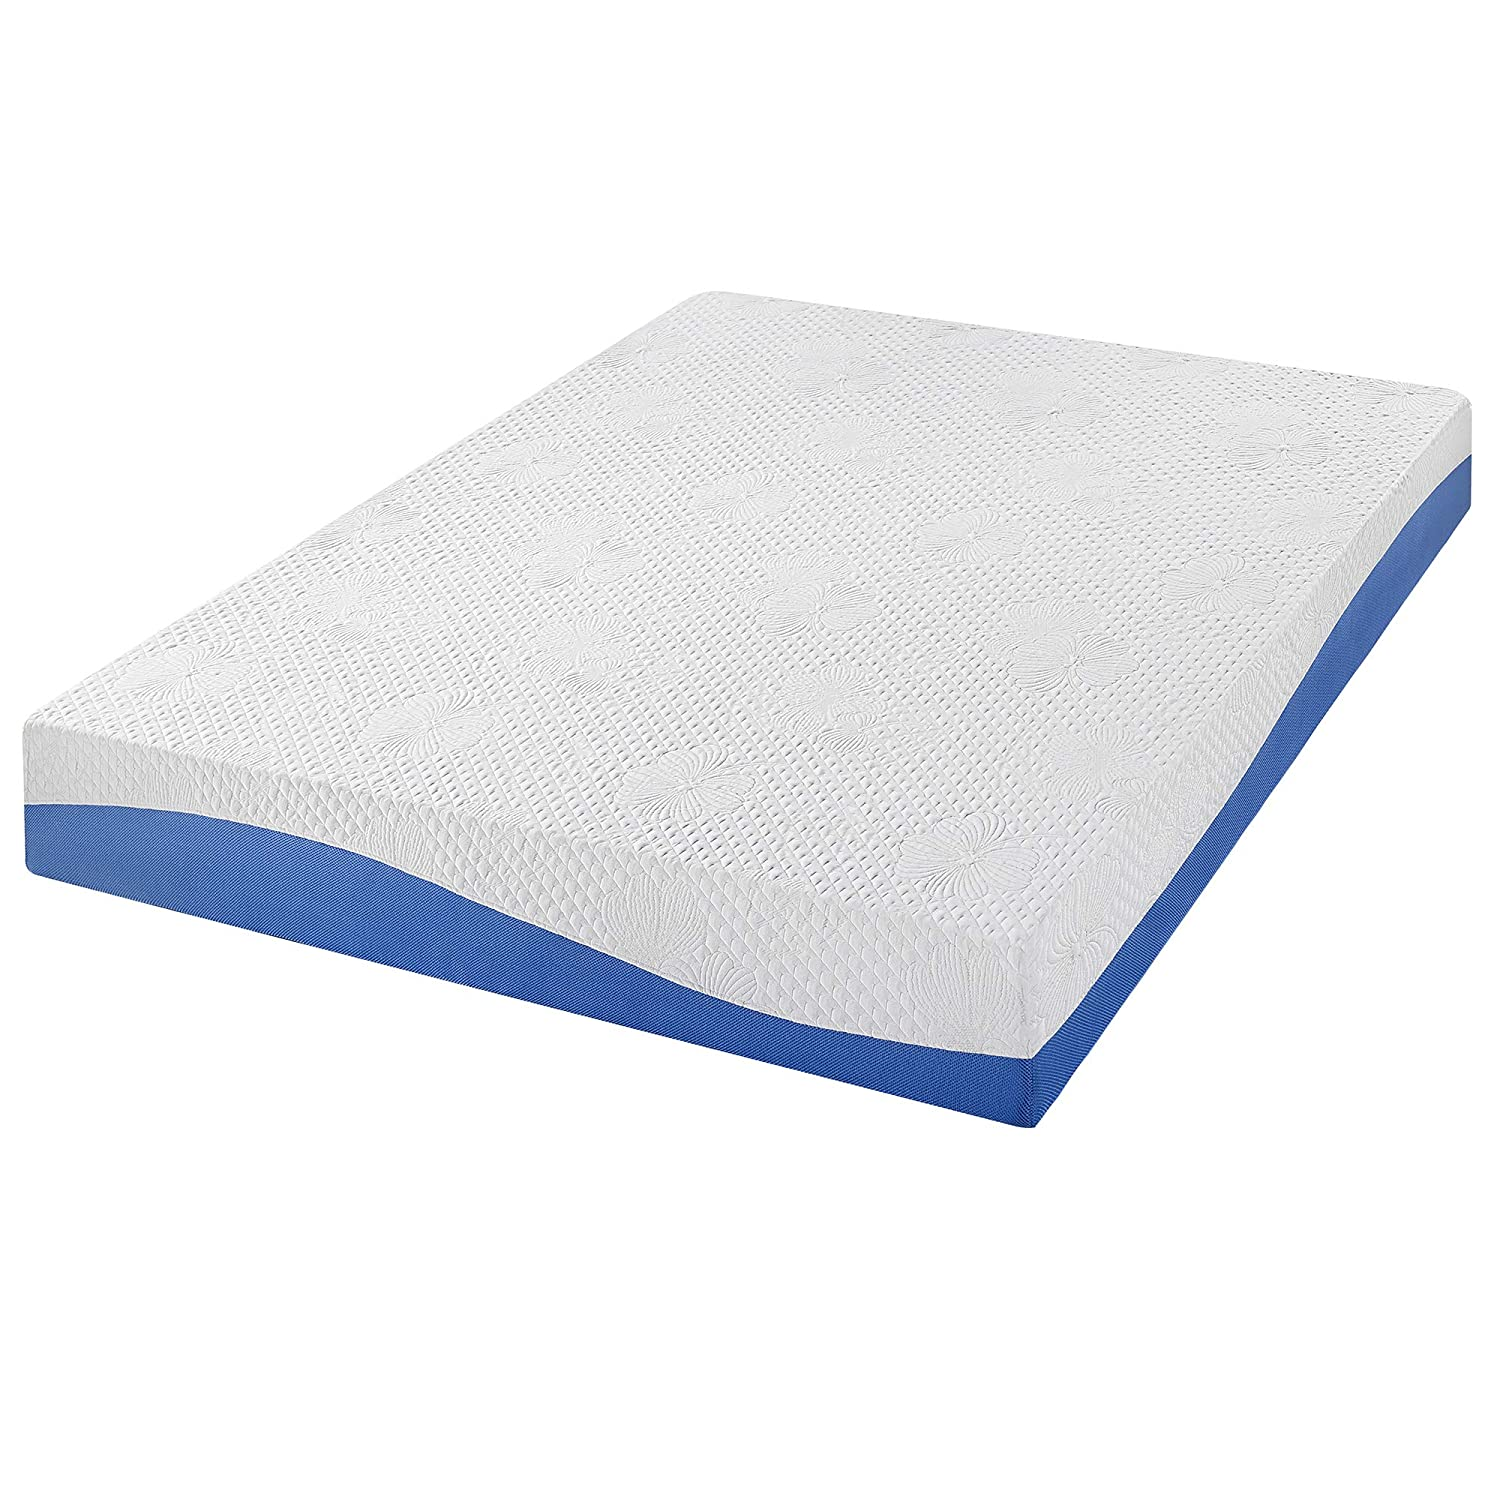 Amazon.com: PrimaSleep Wave Gel Infused Memory Foam Mattress, 10 H, King, Blue: Home & Kitchen